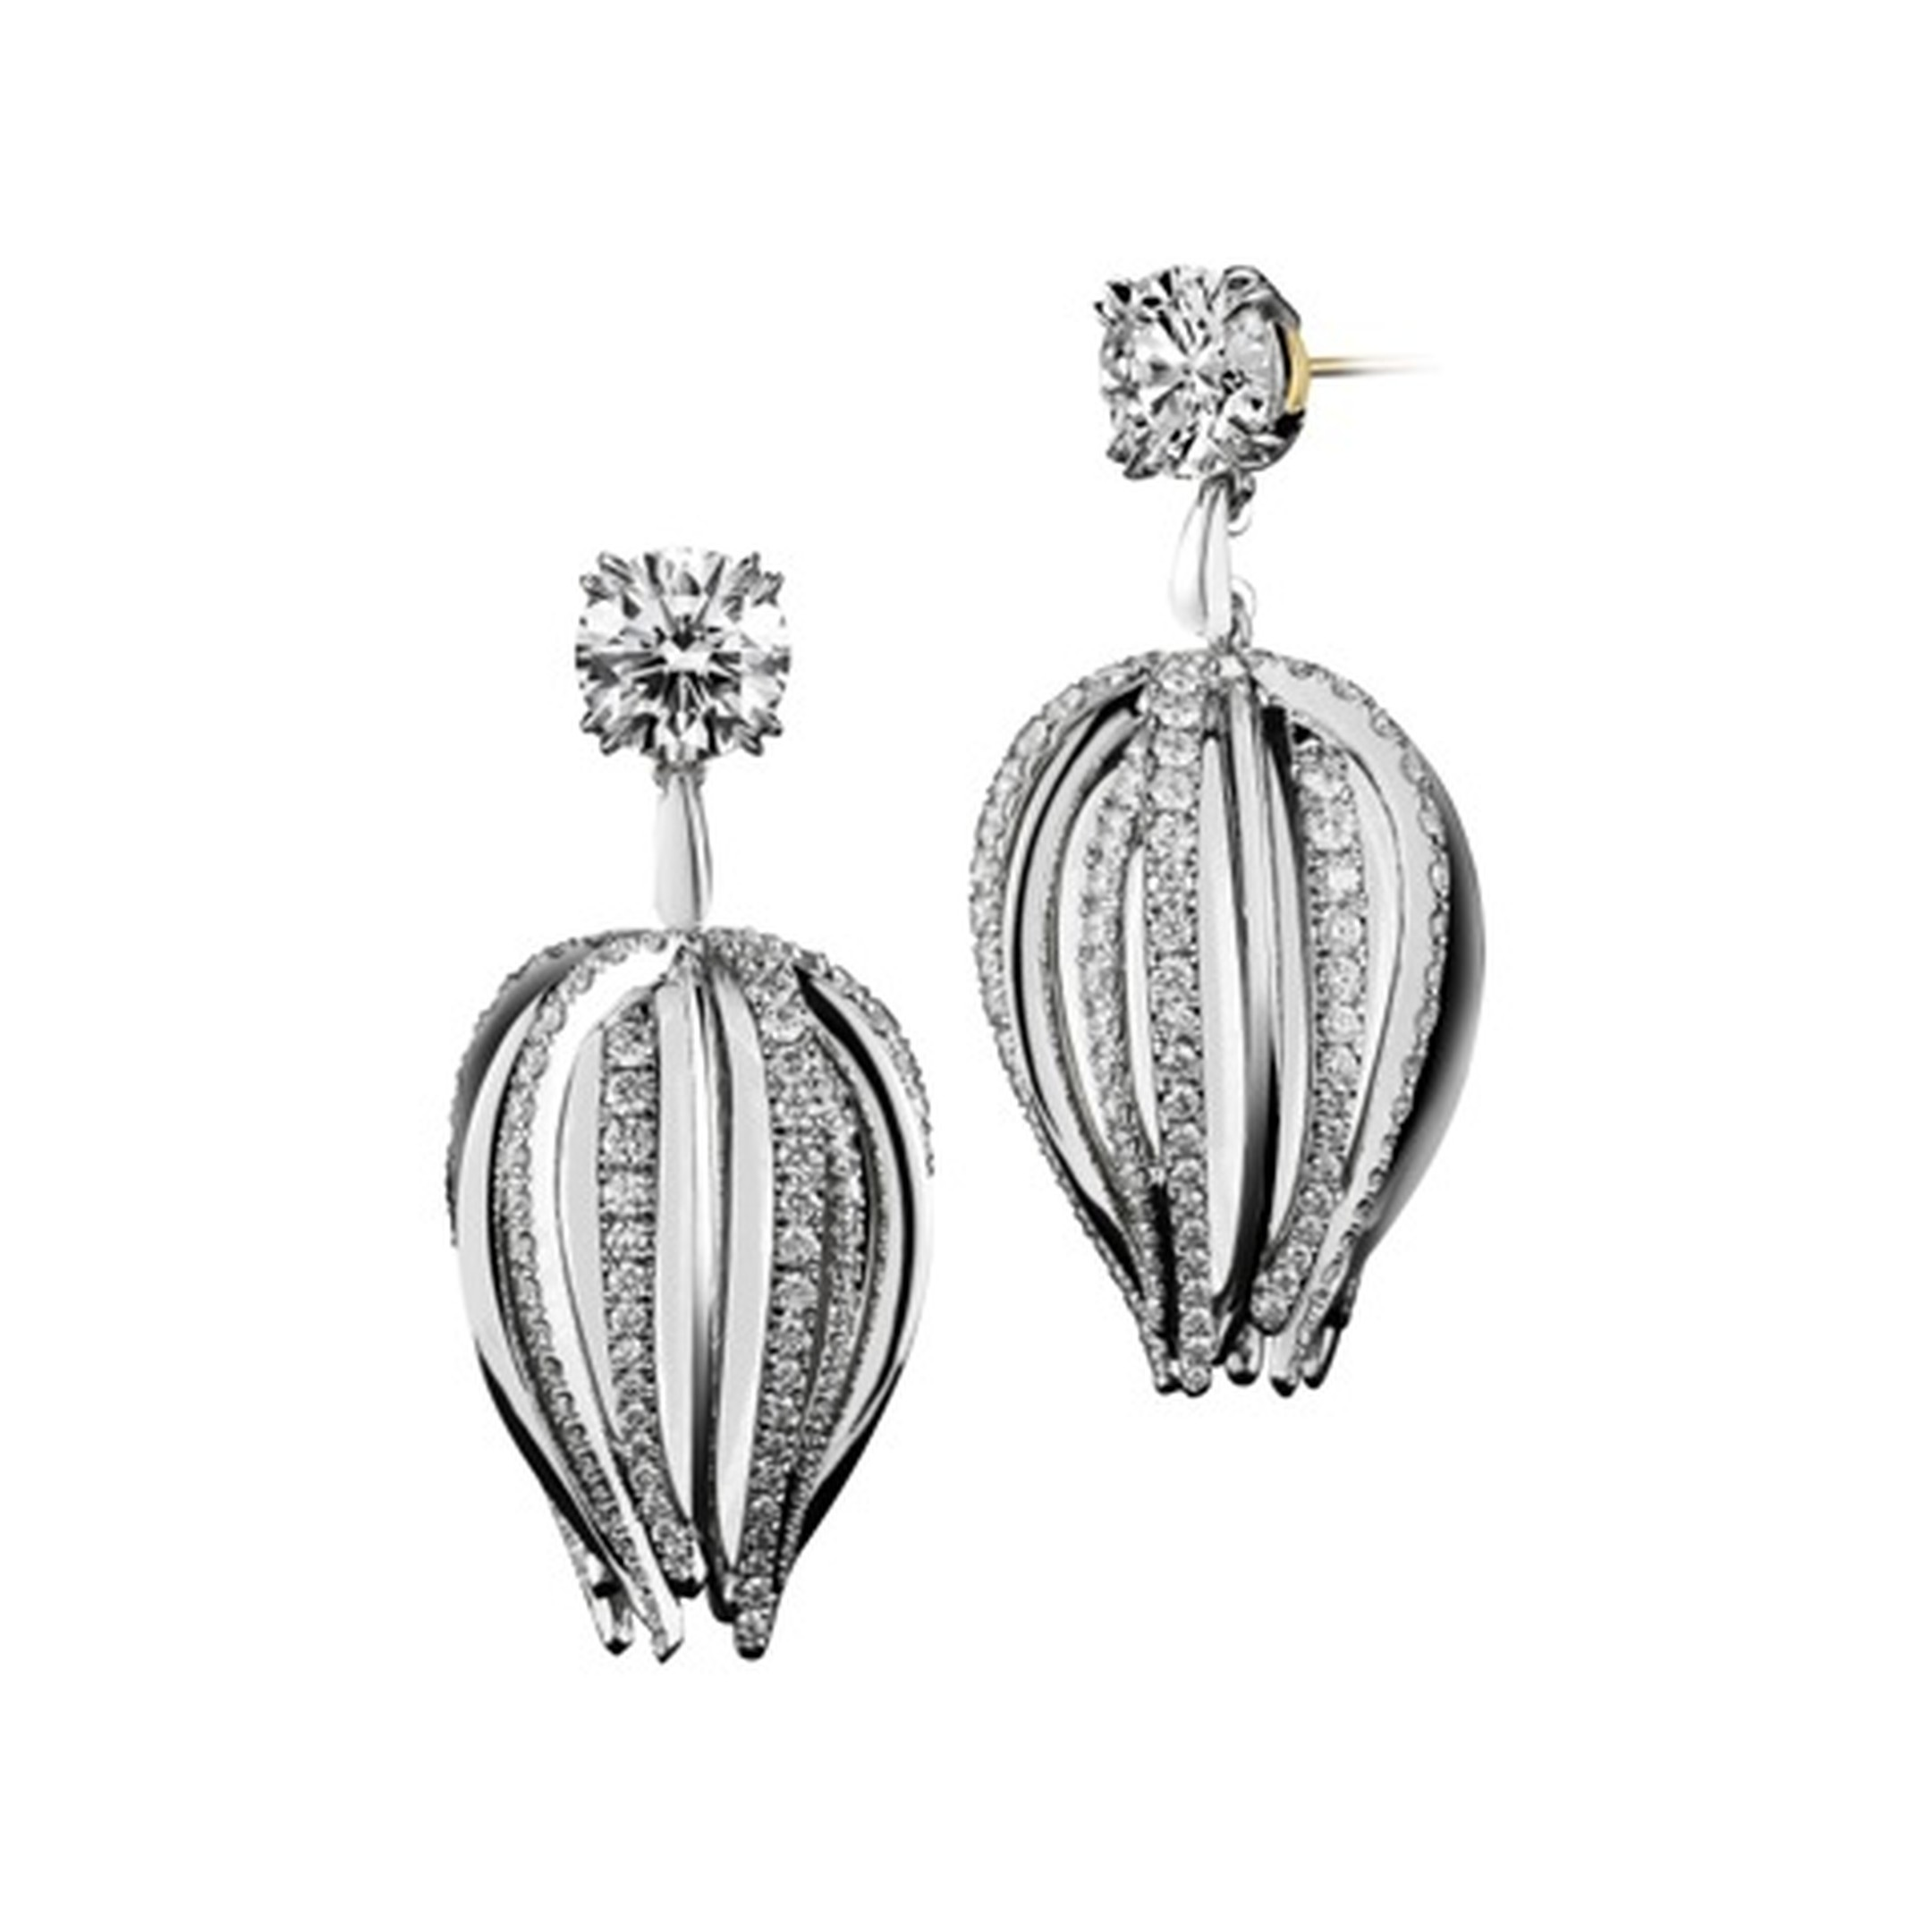 Alexandra Mor curved dangling diamond earrings set in white and black gold.